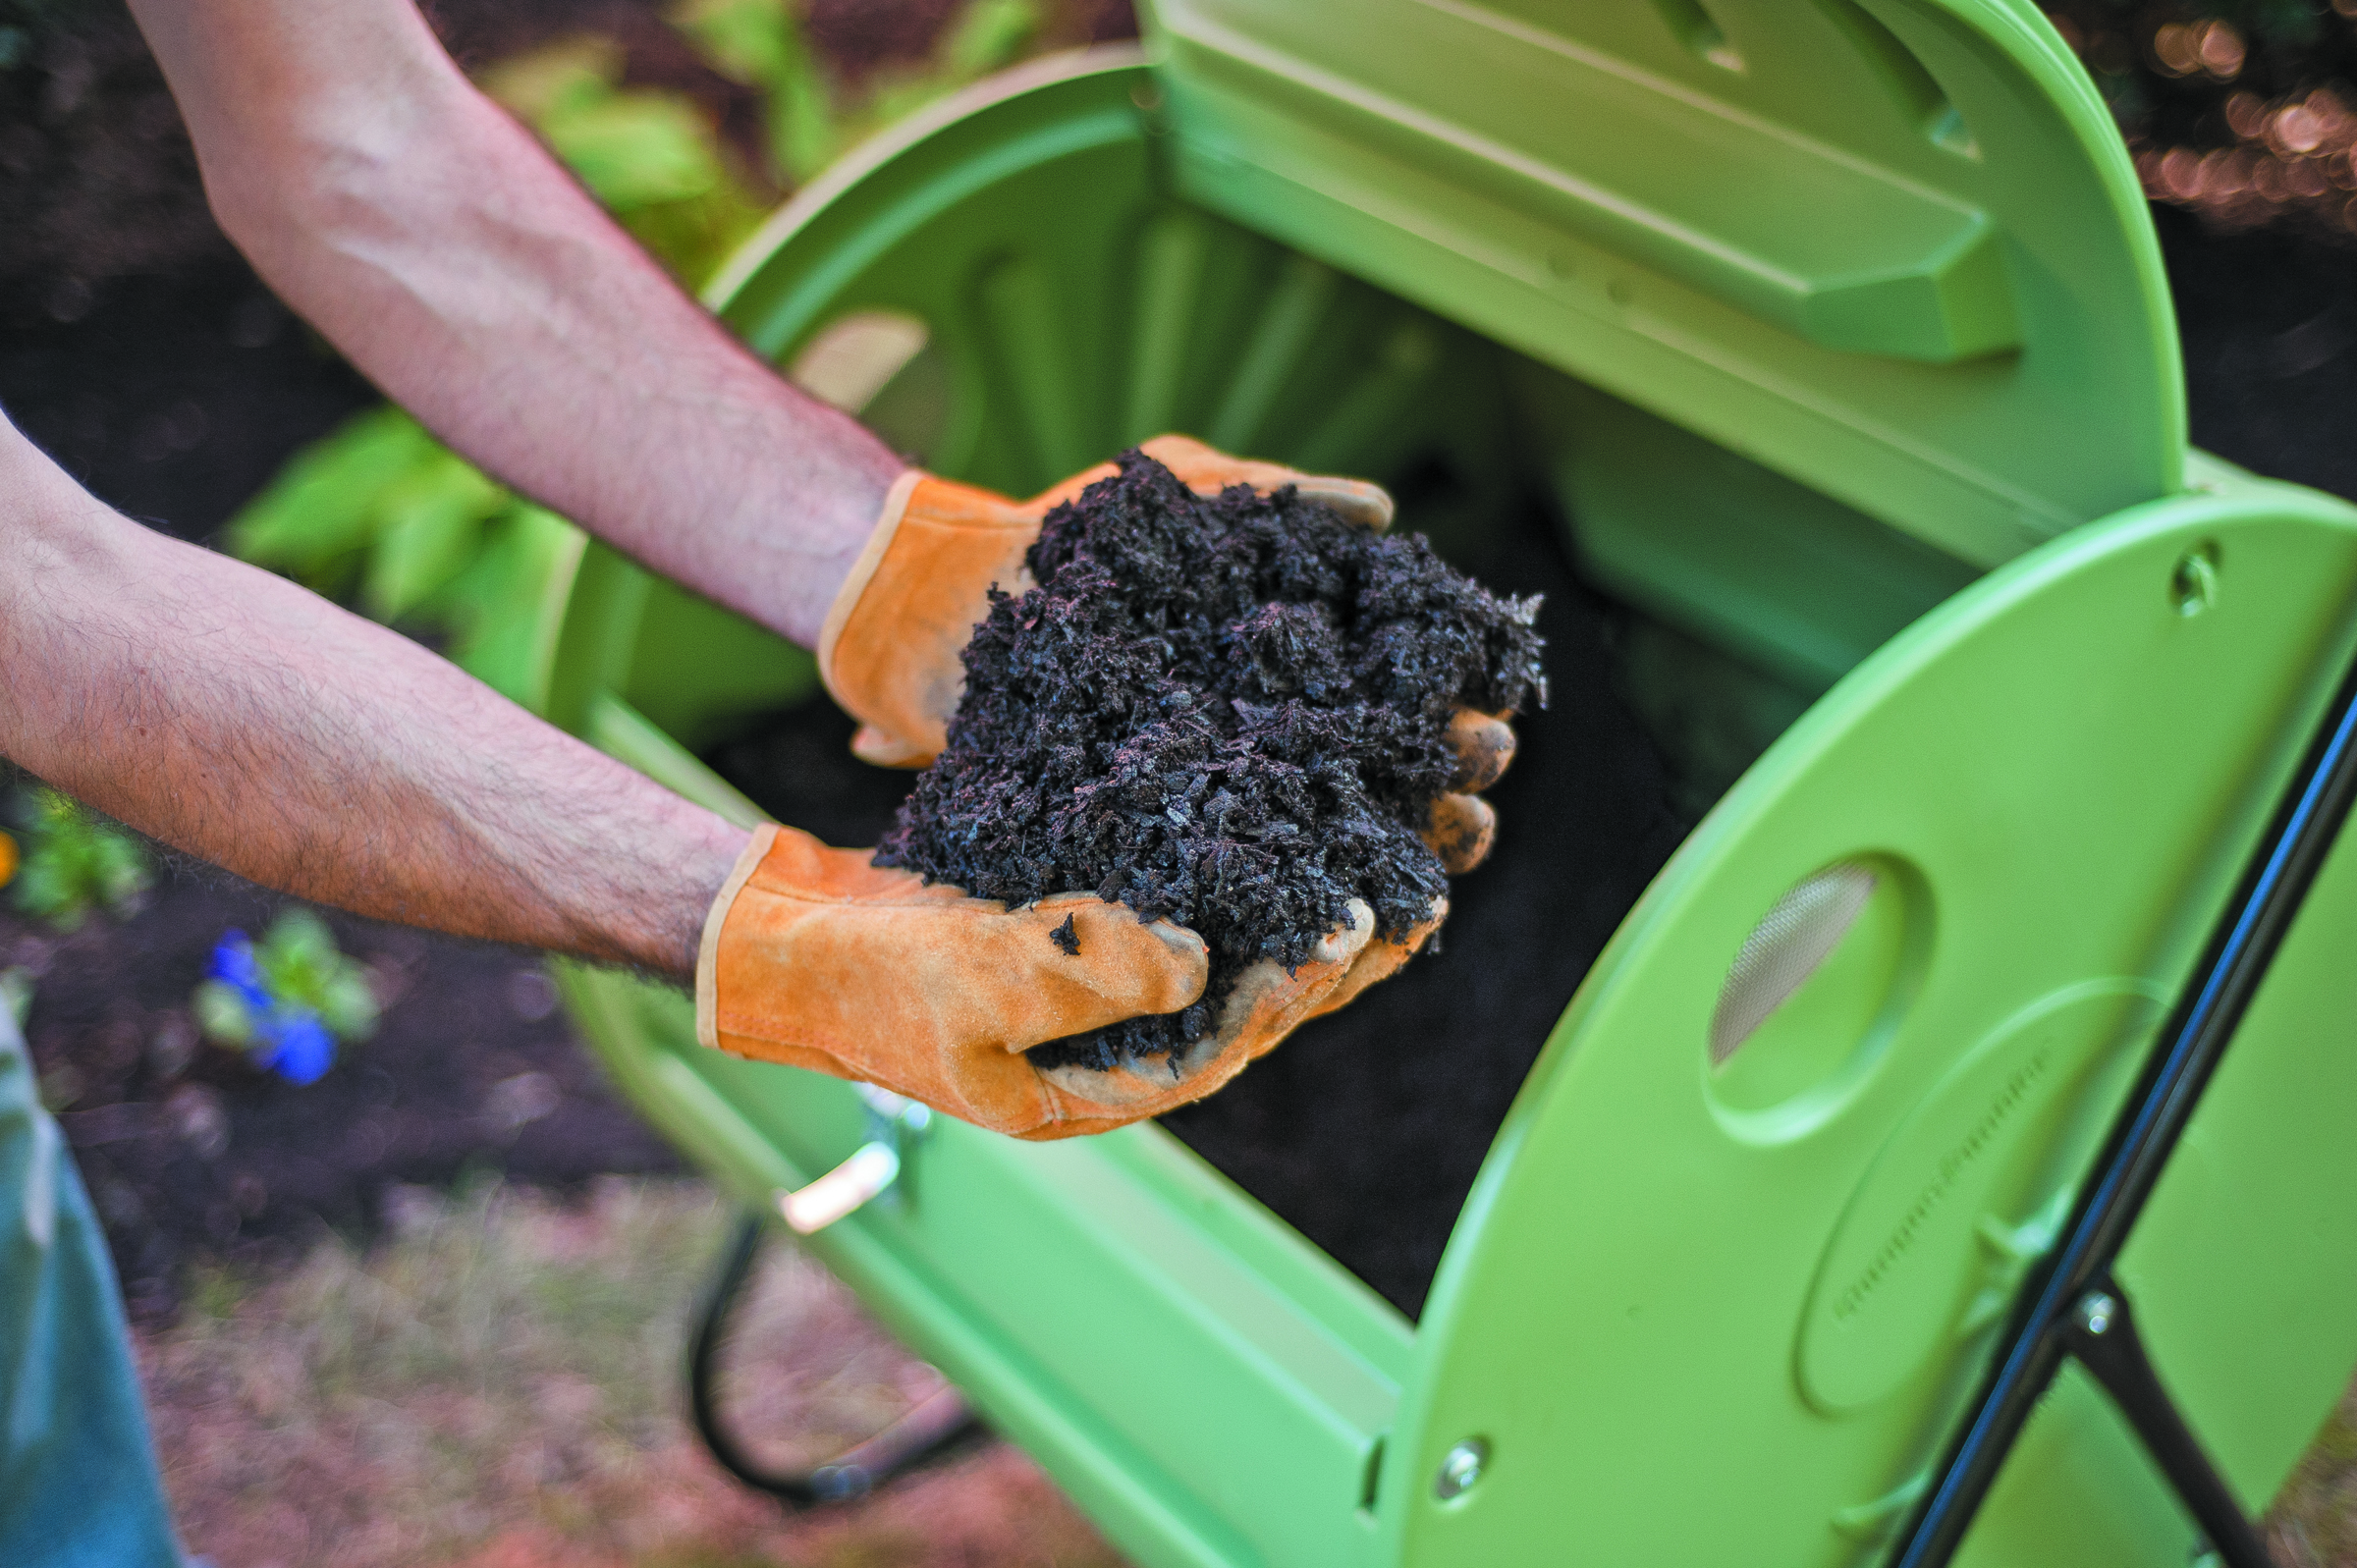 Backyard composting classes, rain barrel workshops and more from PRC